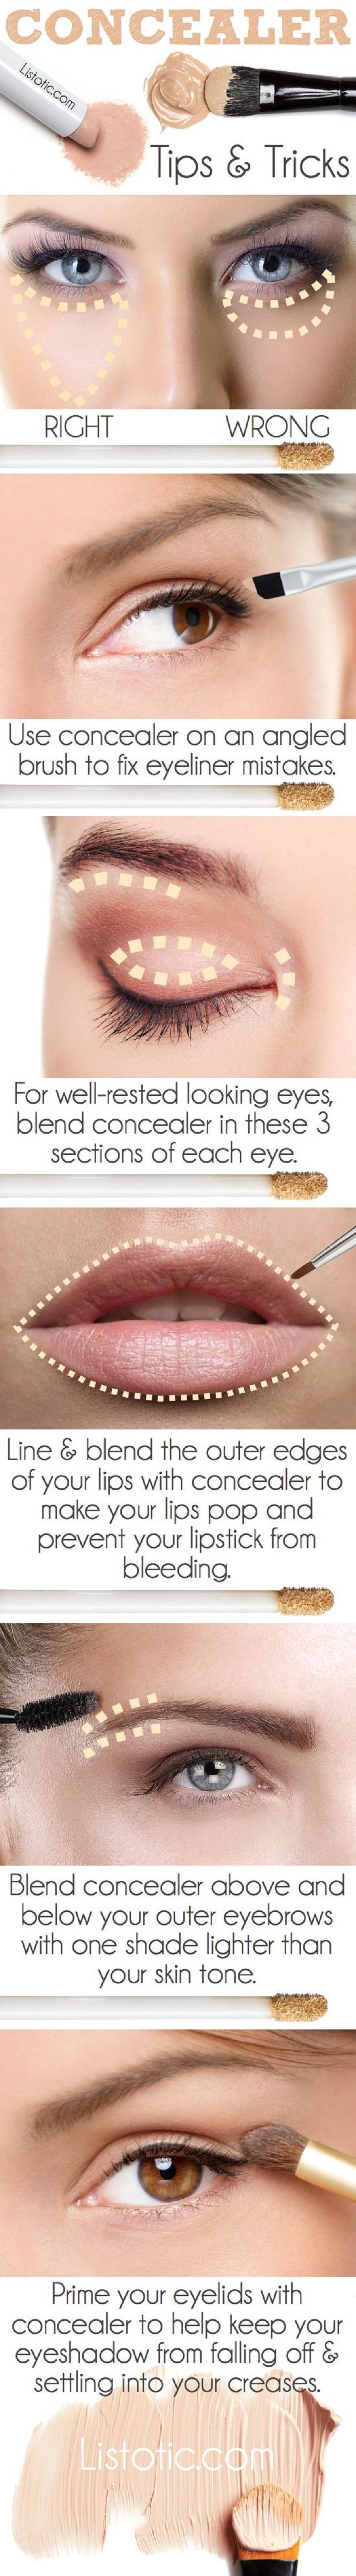 Concealer tips and tricks Pinterest @stylexpert